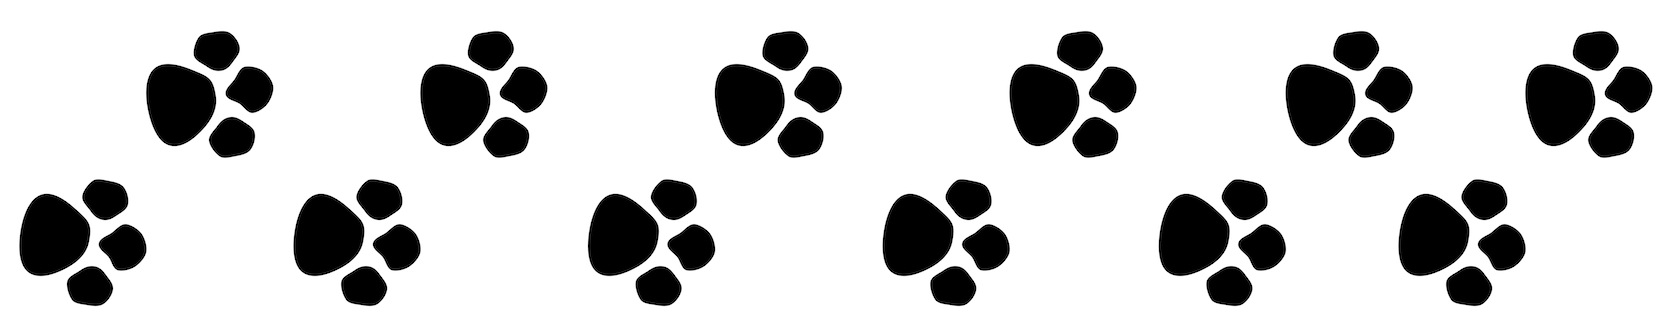 1667x331 Paw Prints Paw Print Wildcats On Dog Paws Paw Tattoos And Clip Art